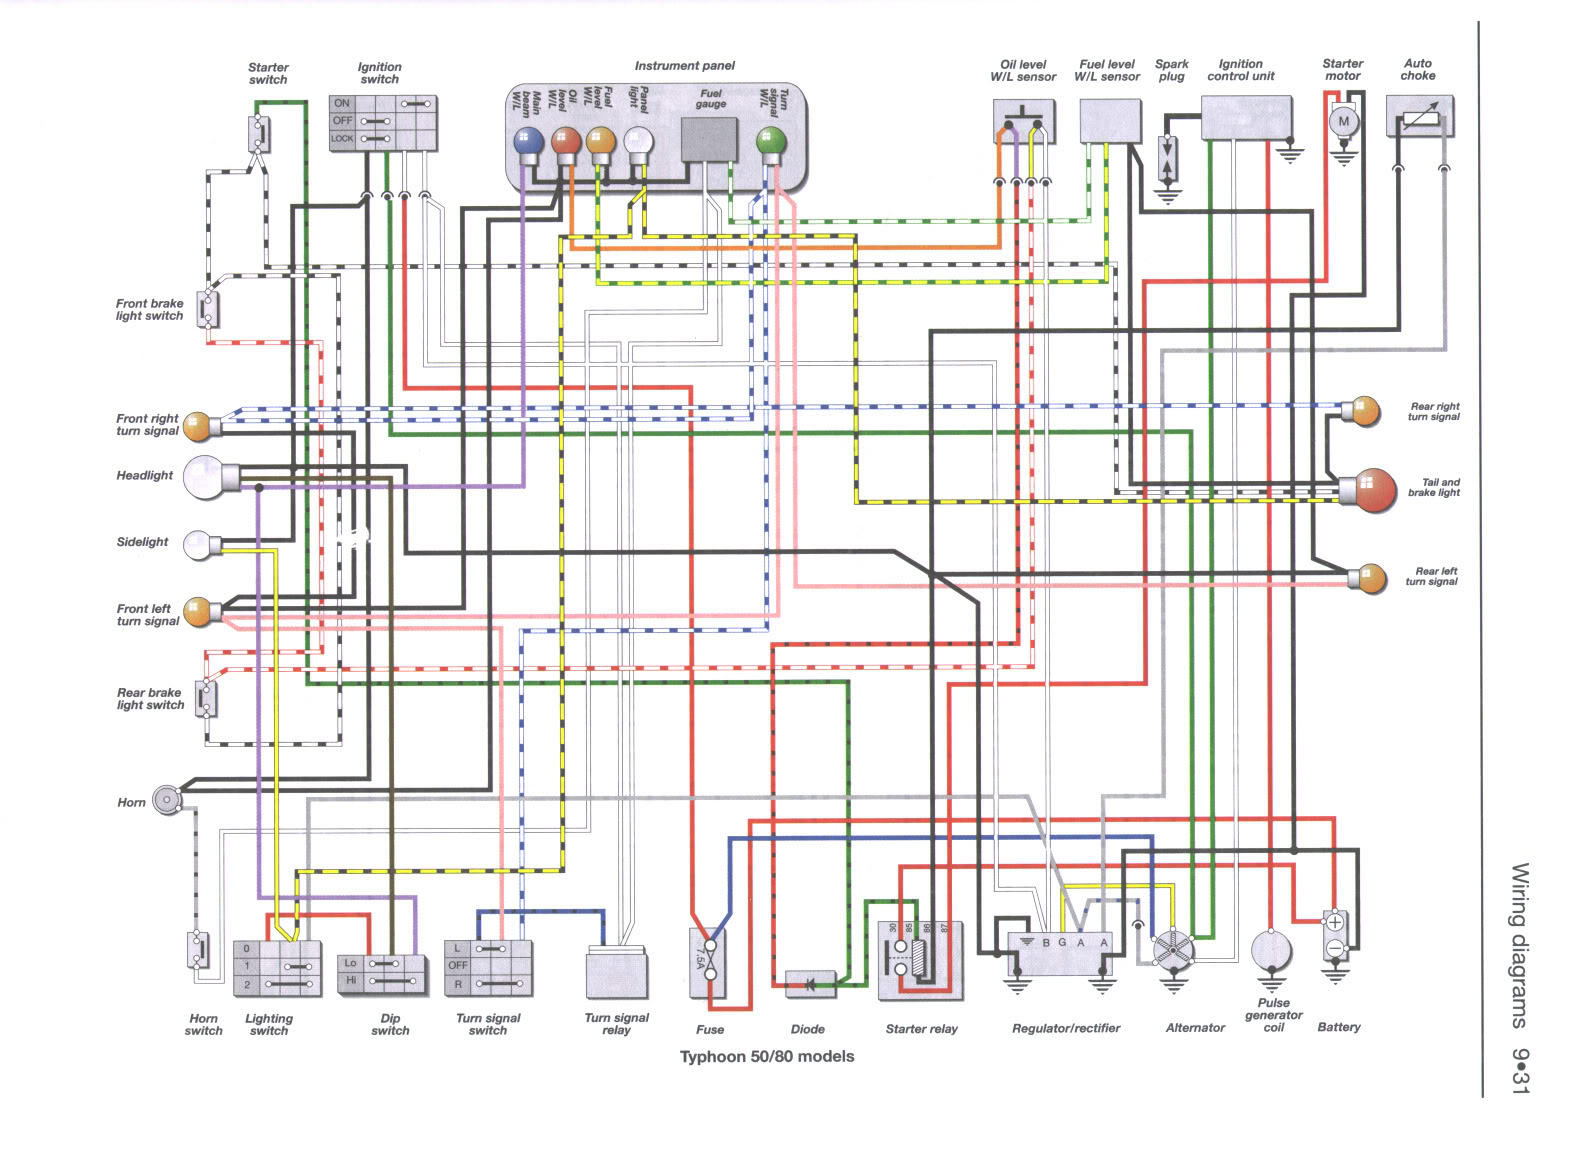 taotao ignition wiring diagram images wiring diagram moreover ignition wiring diagram tao and schematic